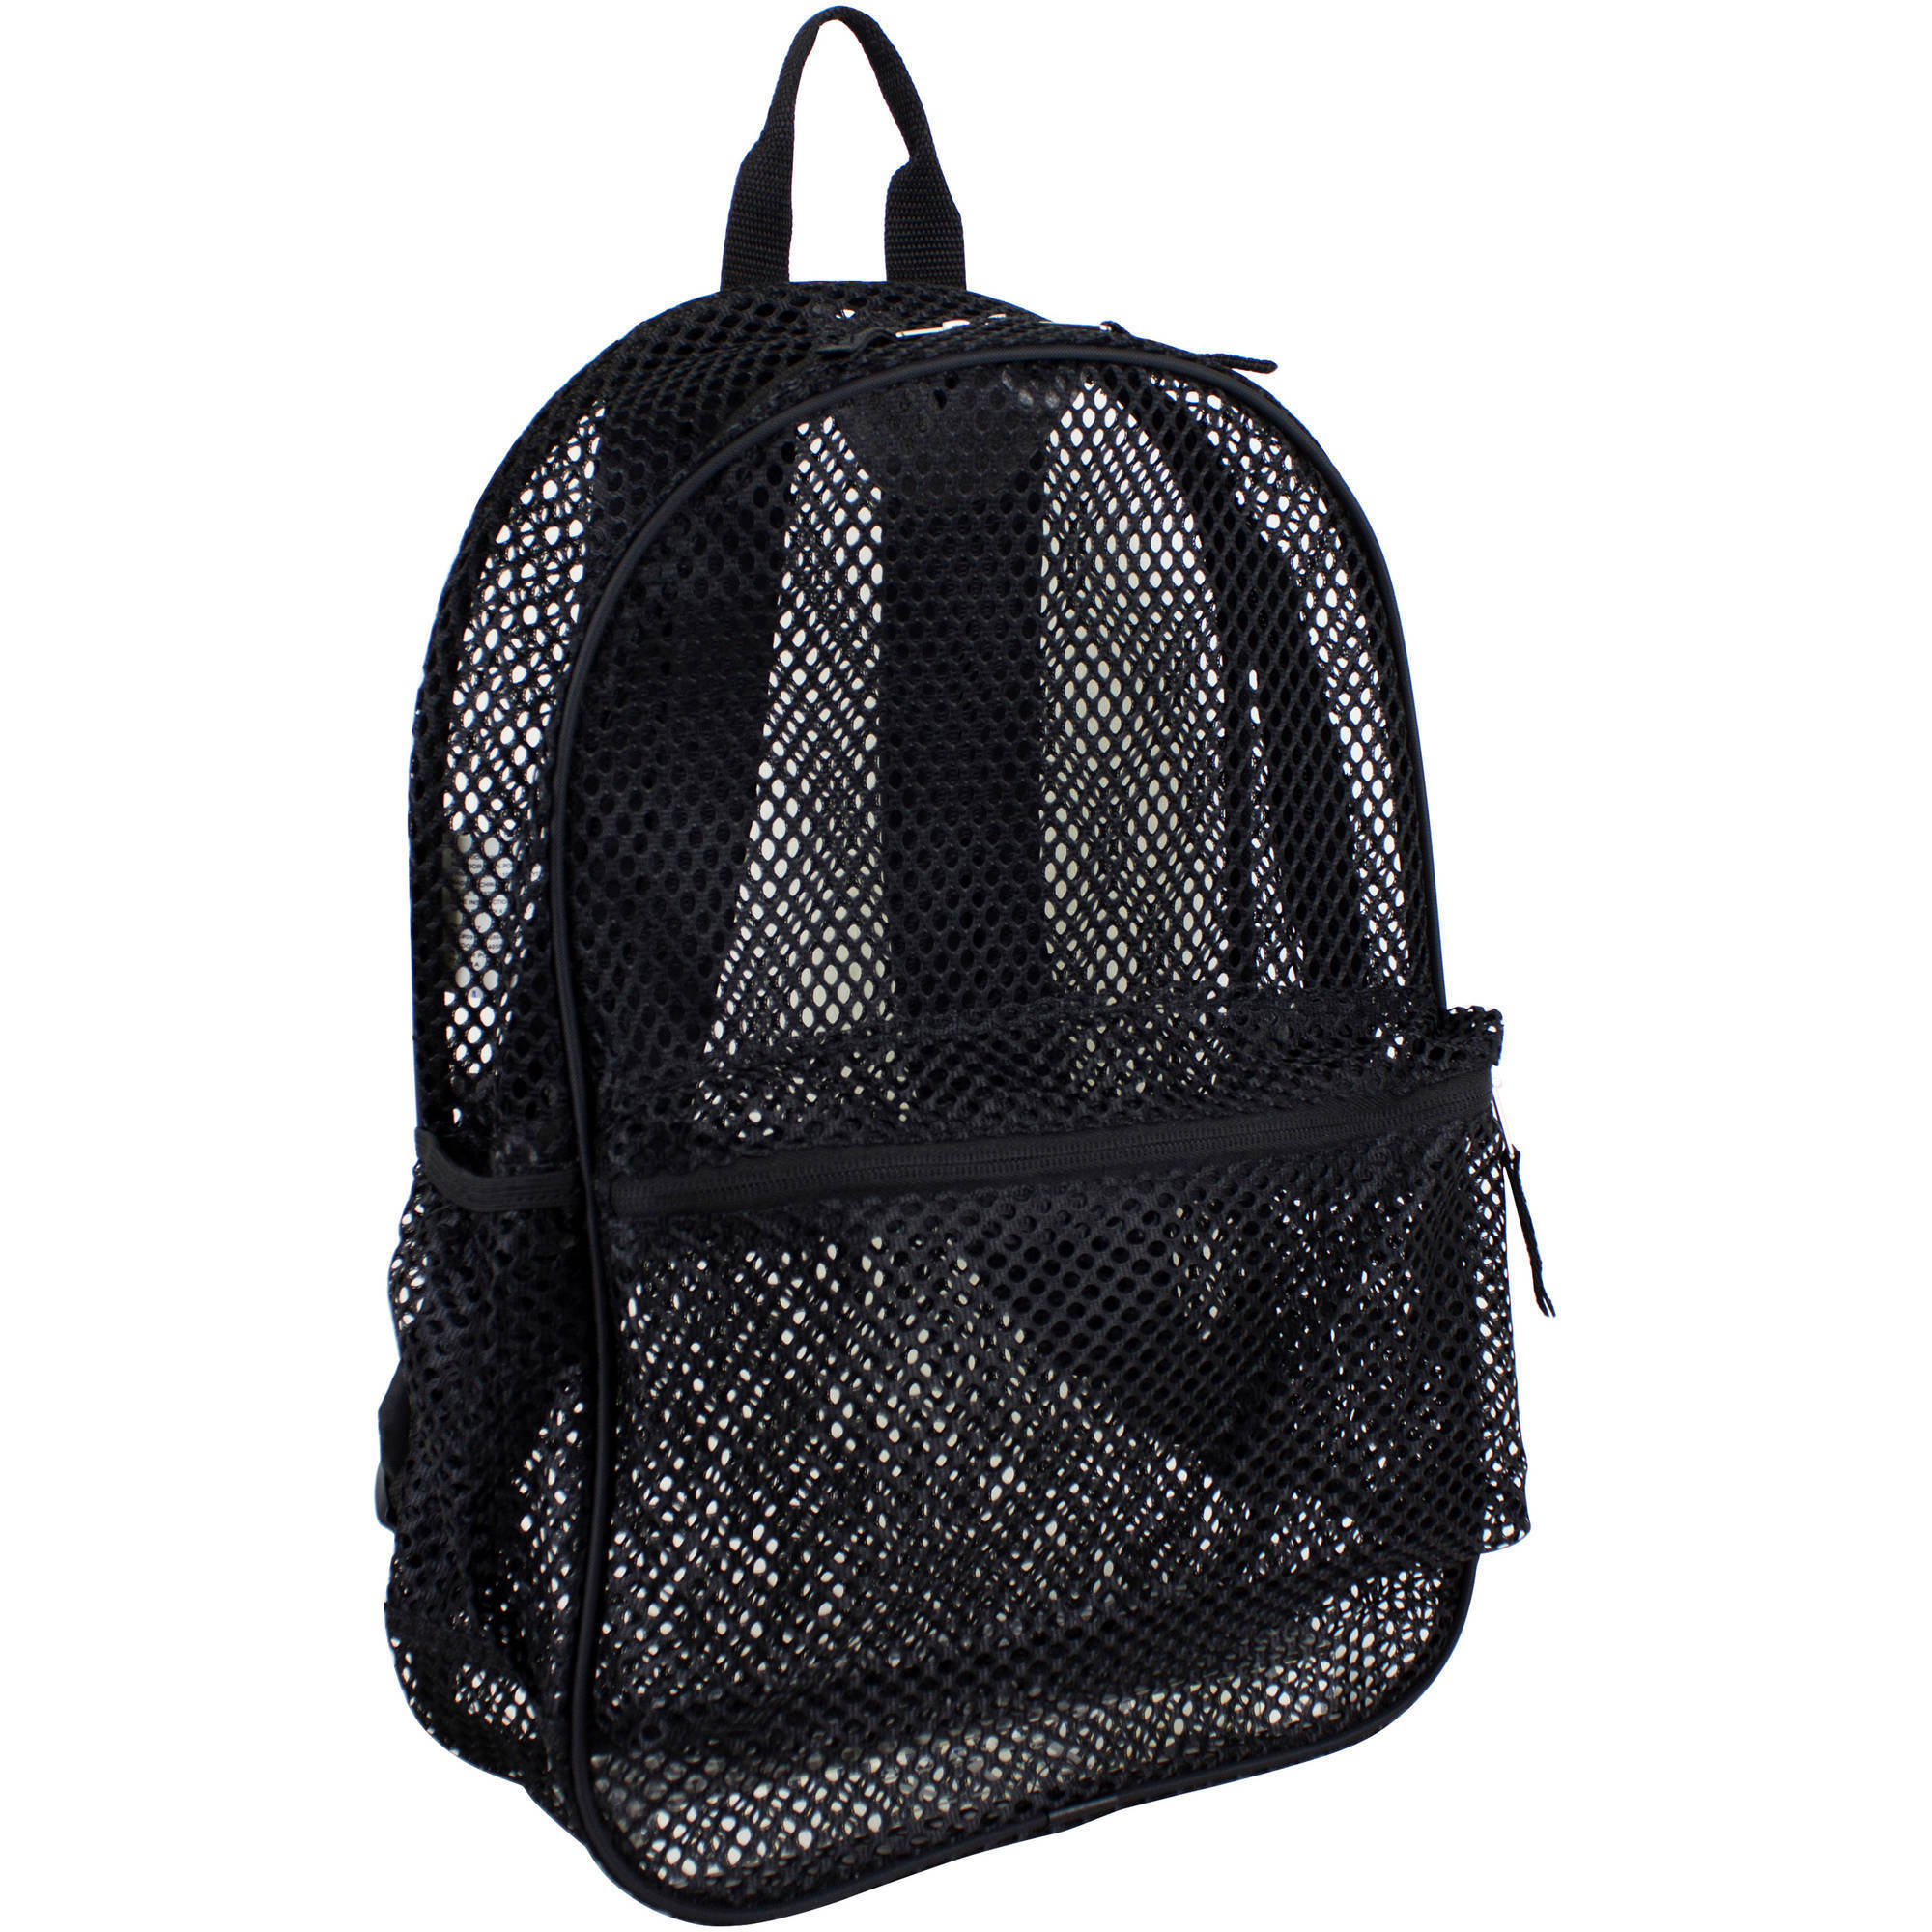 Eastsport Mesh Backpack with Padded Adjustable Straps